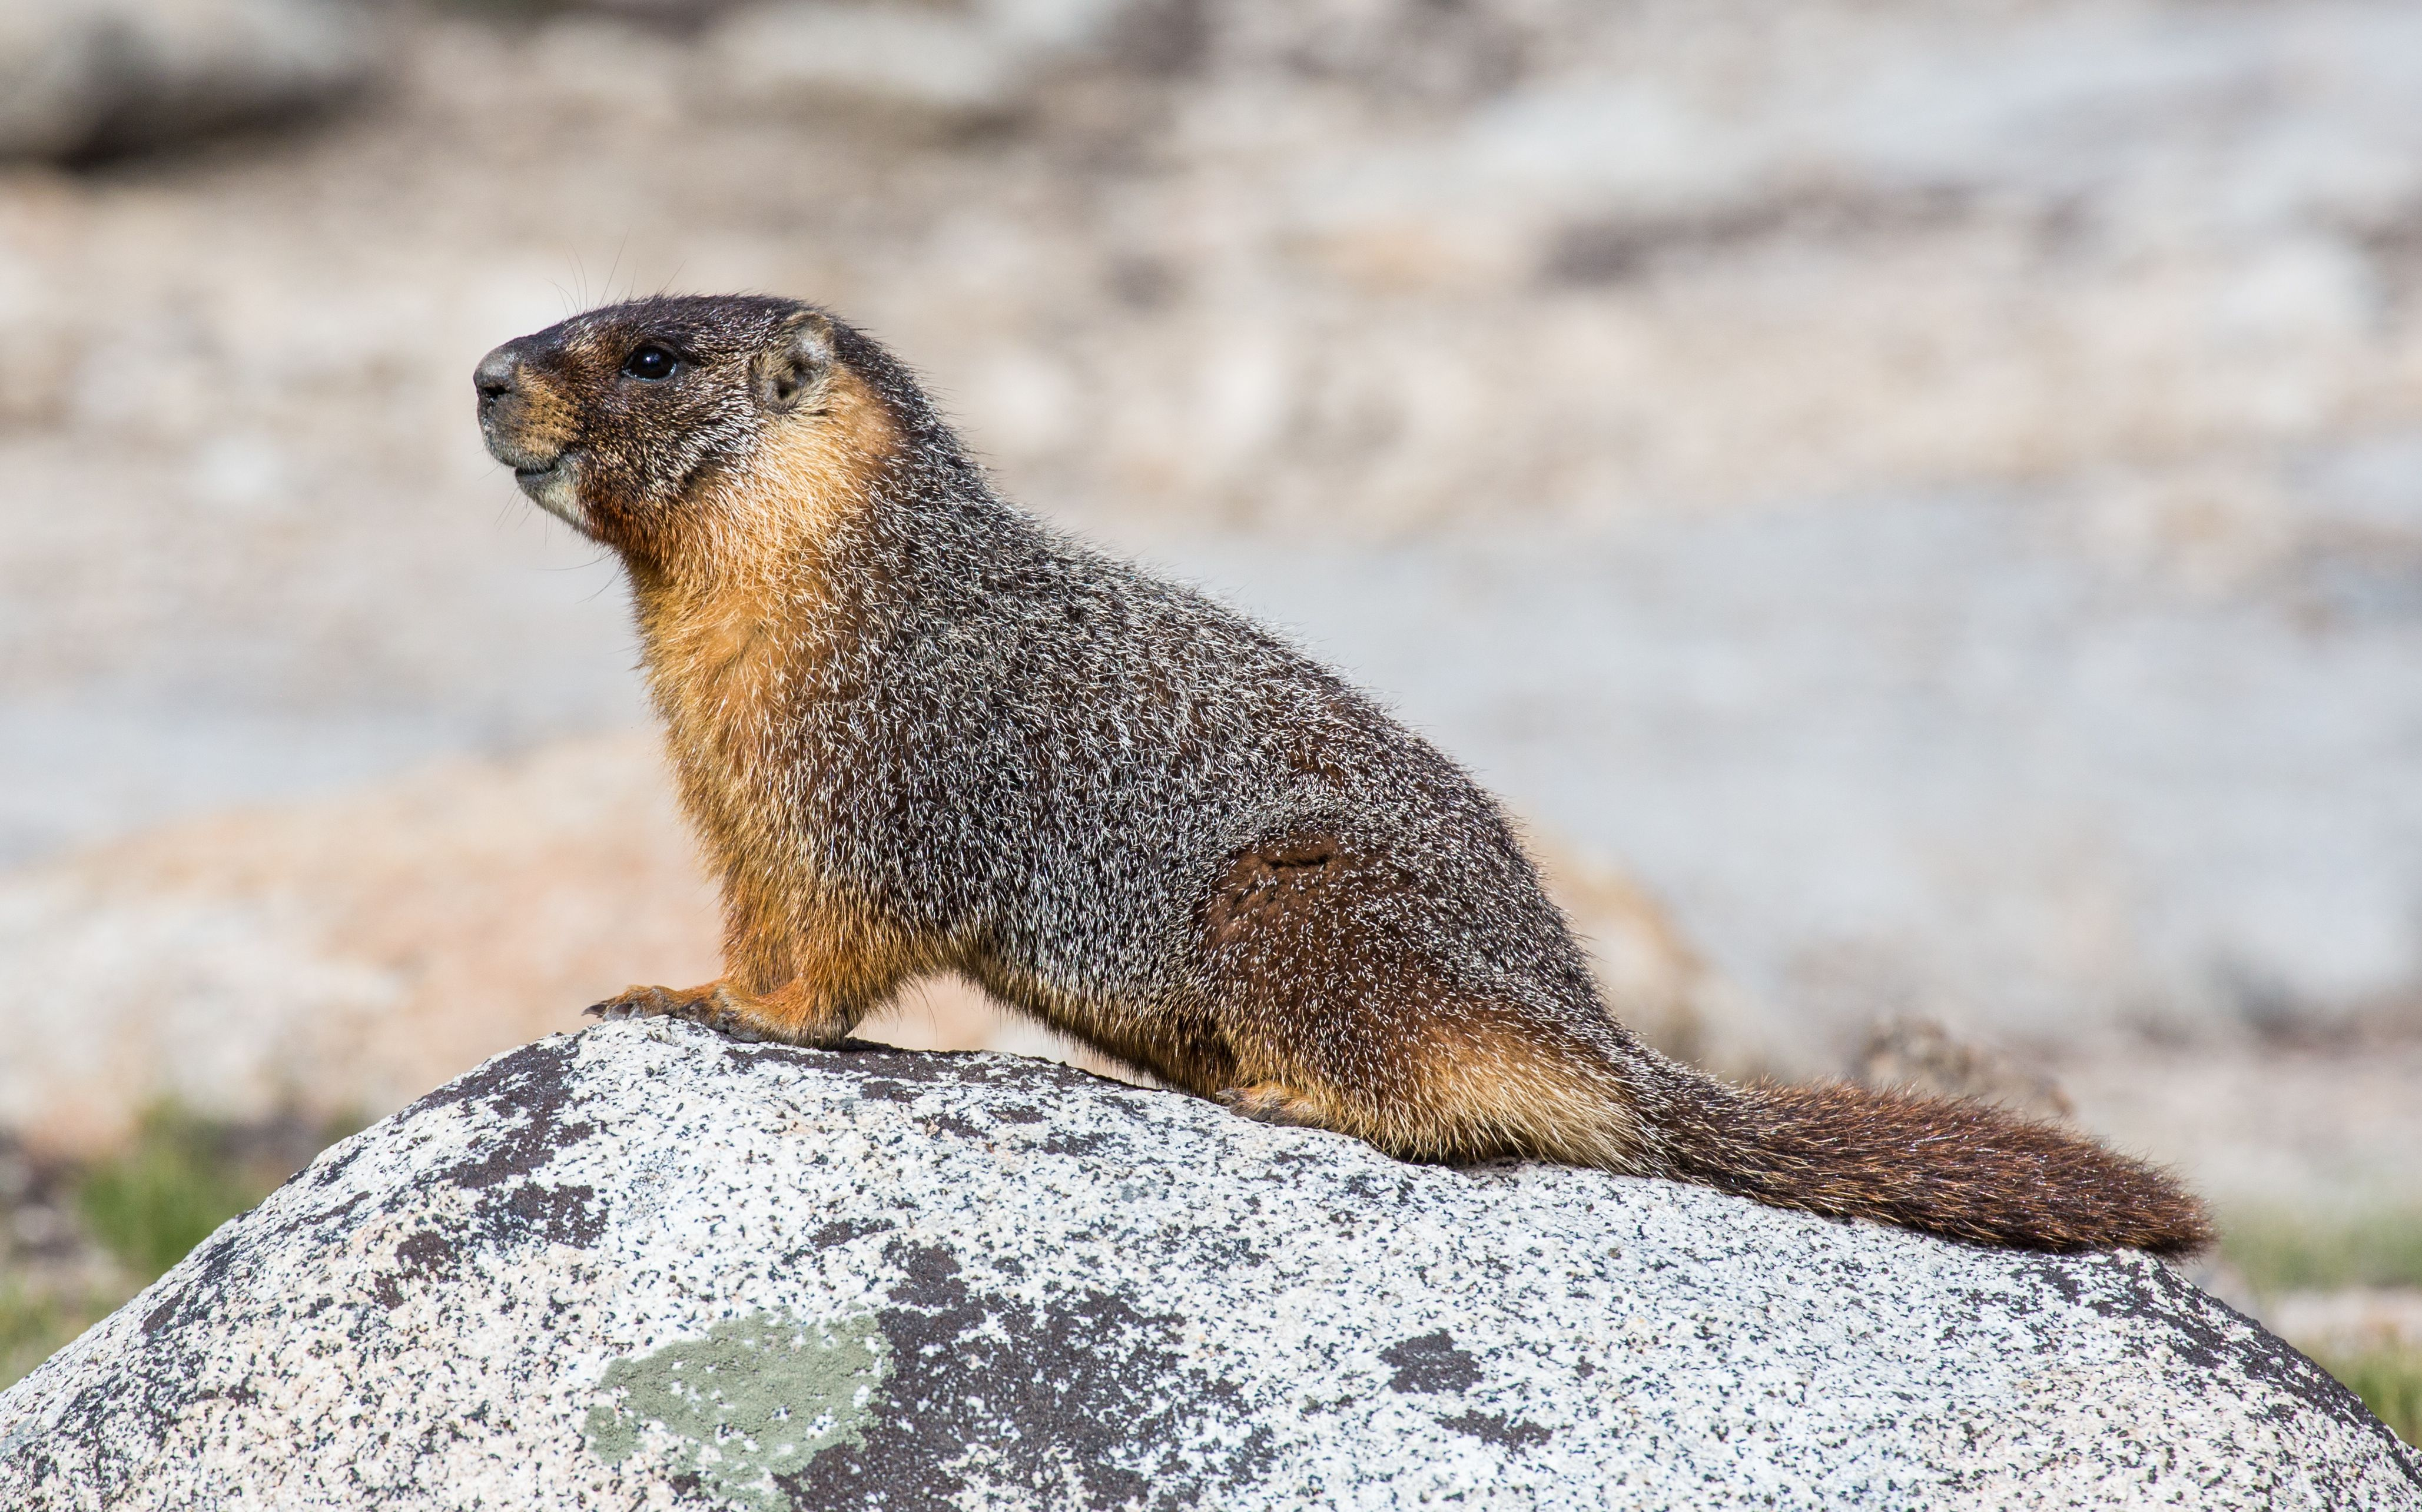 eastern marmots are ground dwelling rodents of the squirrel family